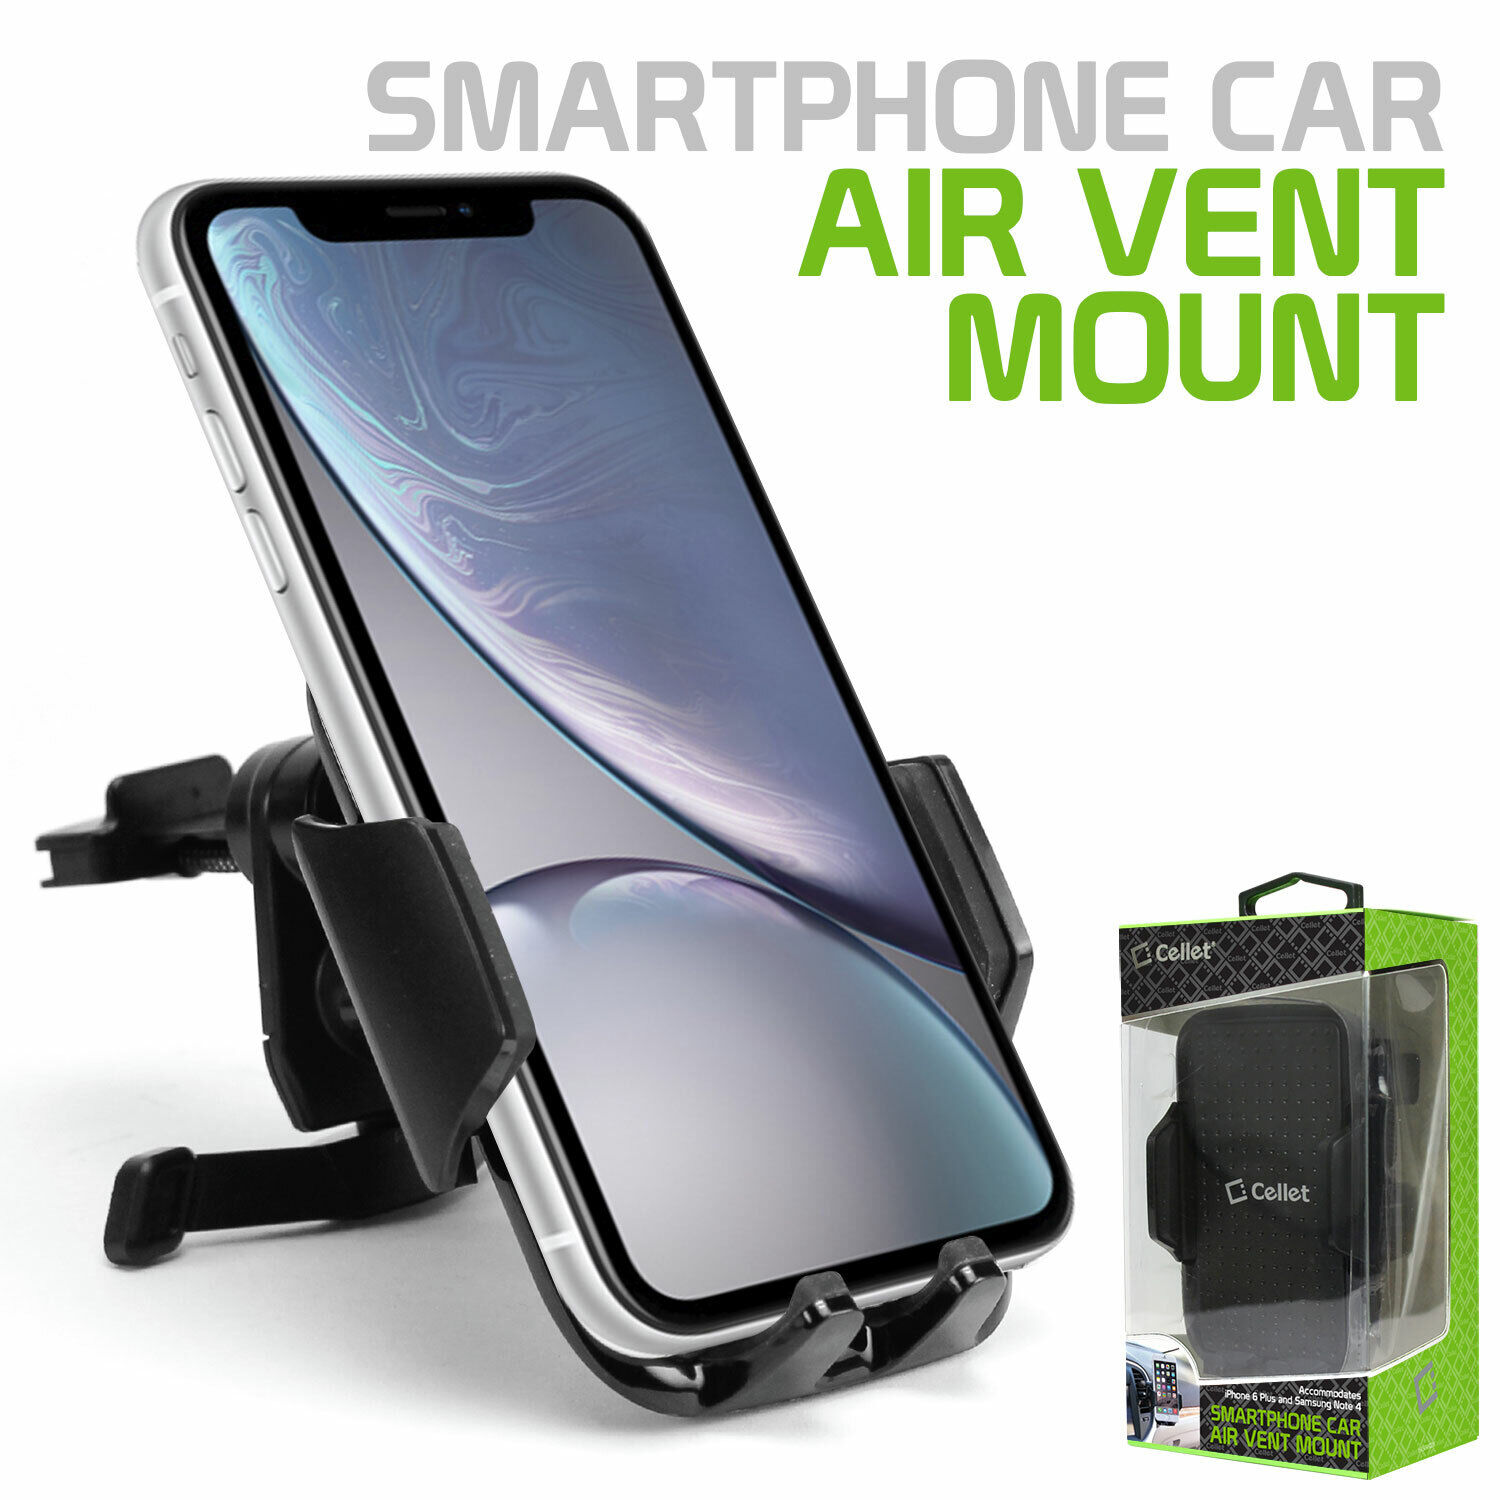 Cellet Air Vent Phone Holder Mount, Universal Cell Phone Car